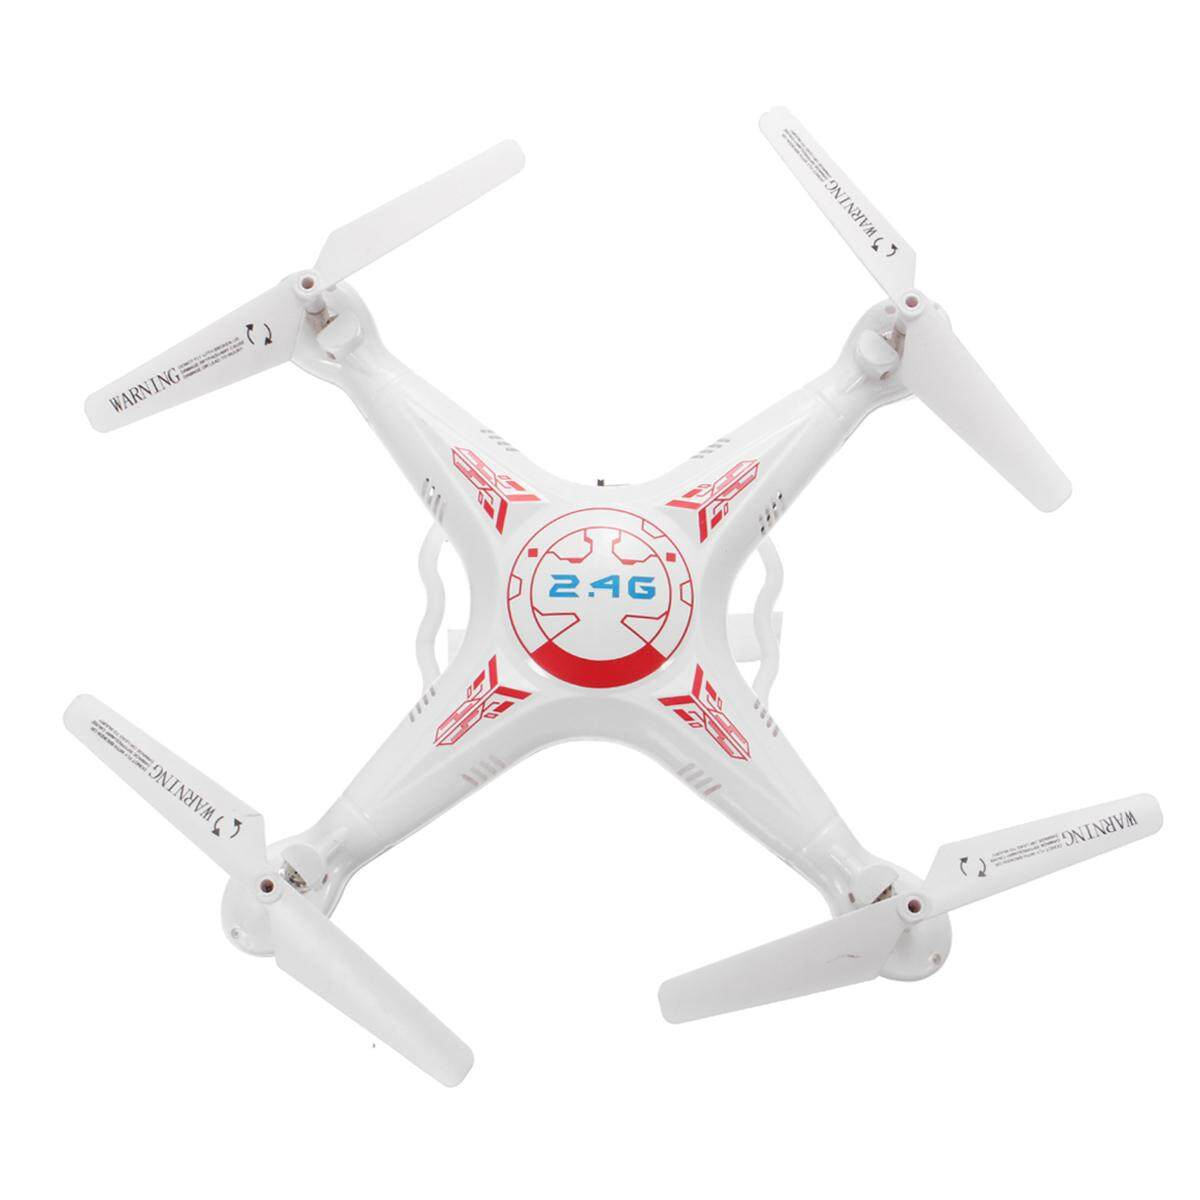 X5C-1 2.4G 4-Axis HD 2MP Kamera Foto Video Drone RC Quadcopter W/Lampu LED Putih